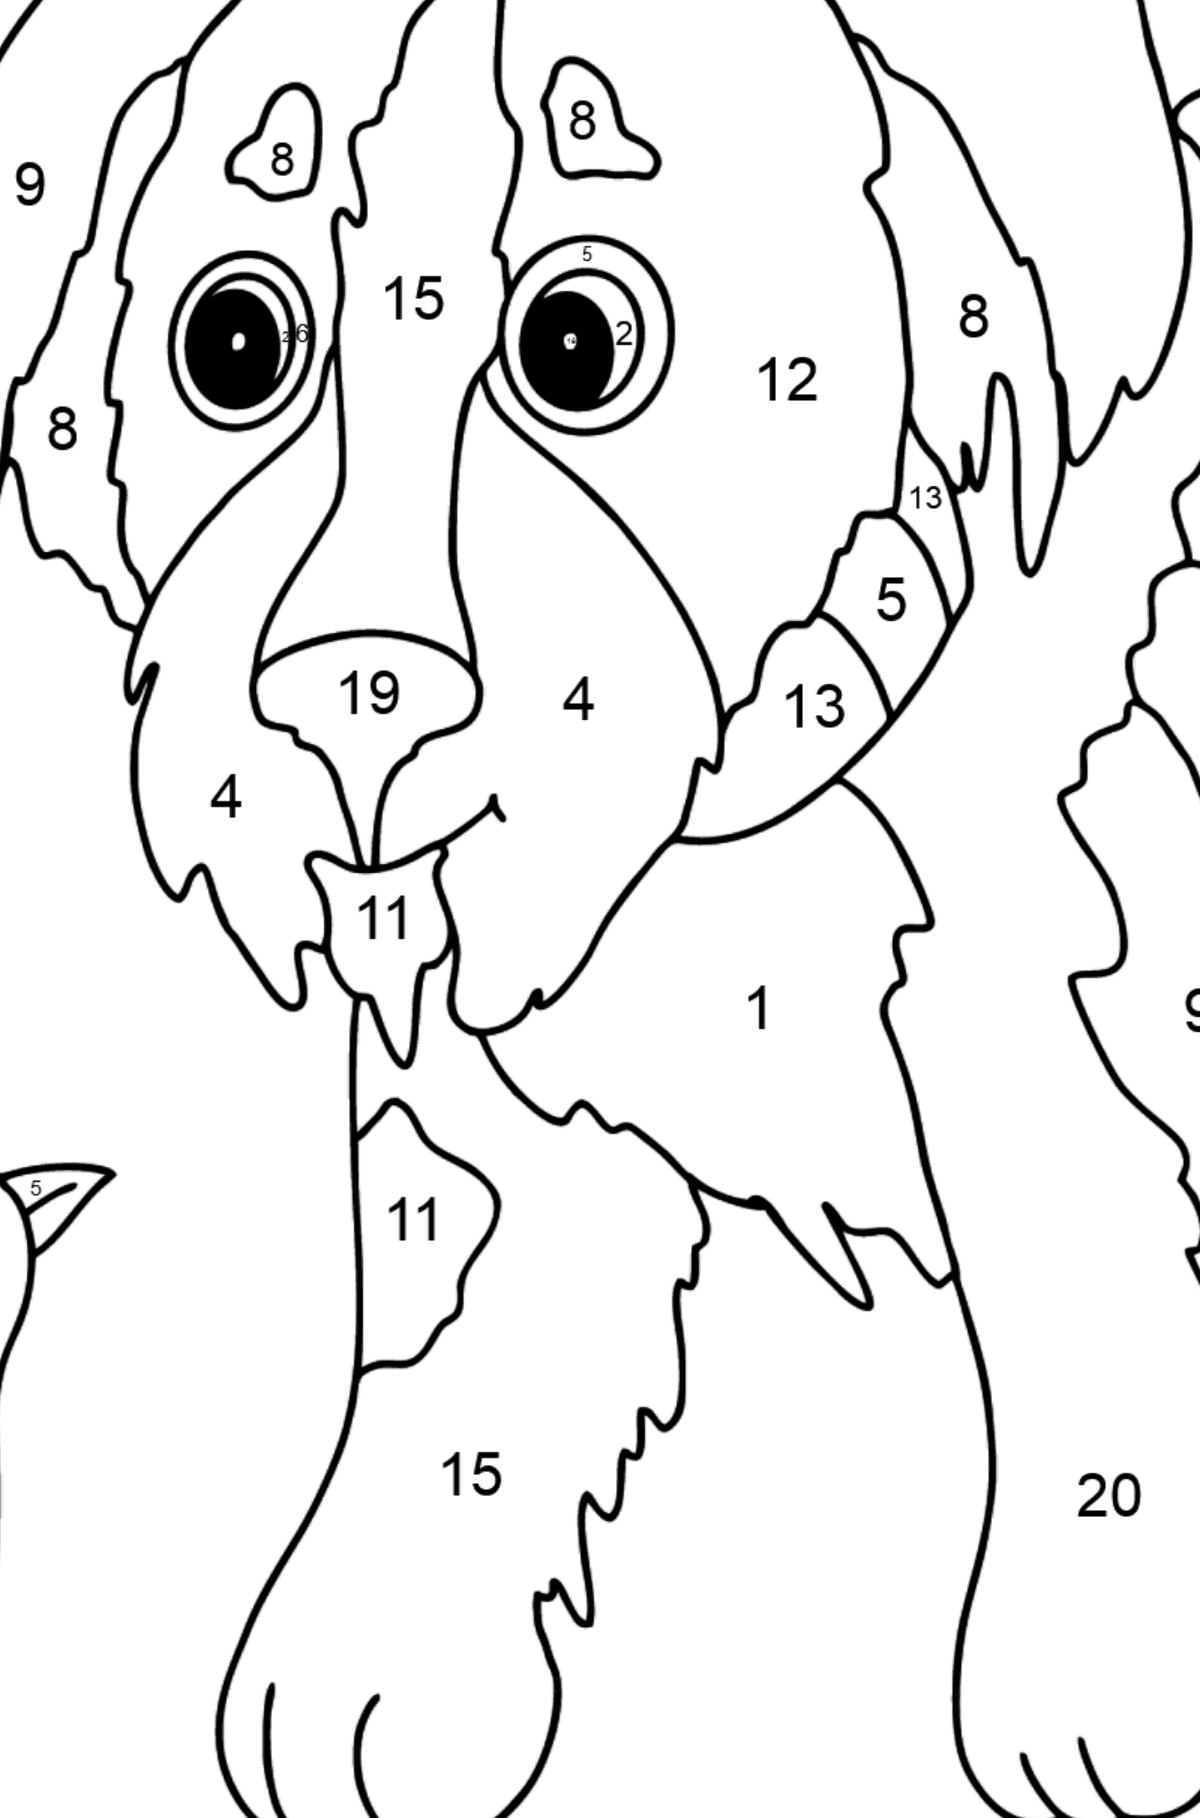 Coloring Page - A Dog is Playing with a Bird - Coloring by Numbers for Kids